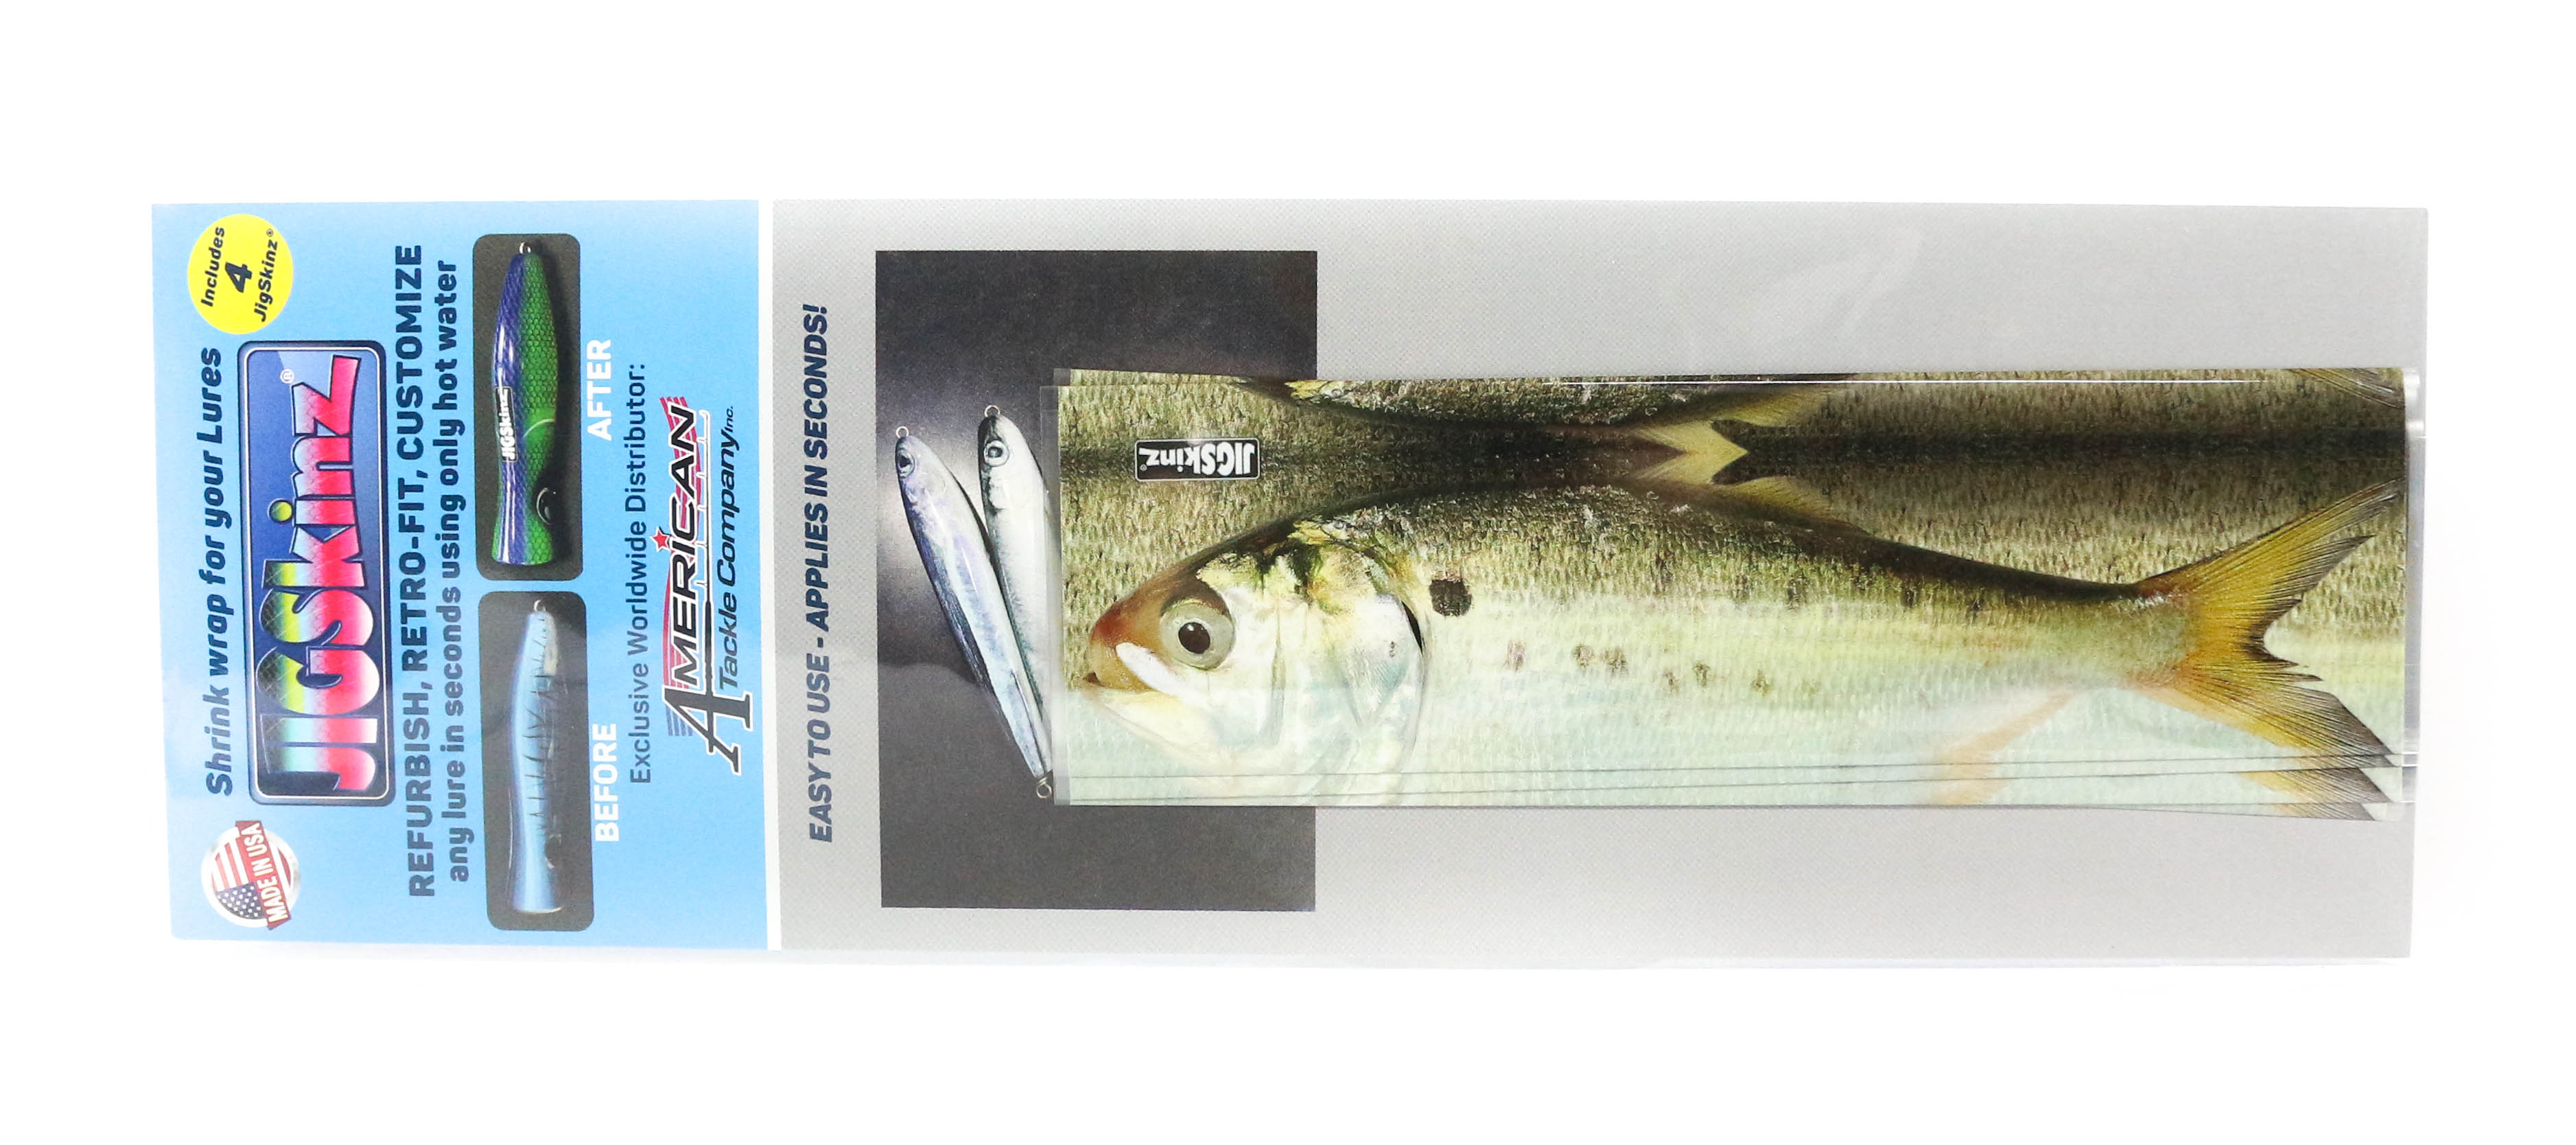 Jigskinz JZRLMH-M4 RL Menhaden 170 x 95mm x 4 pieces Medium (7783)